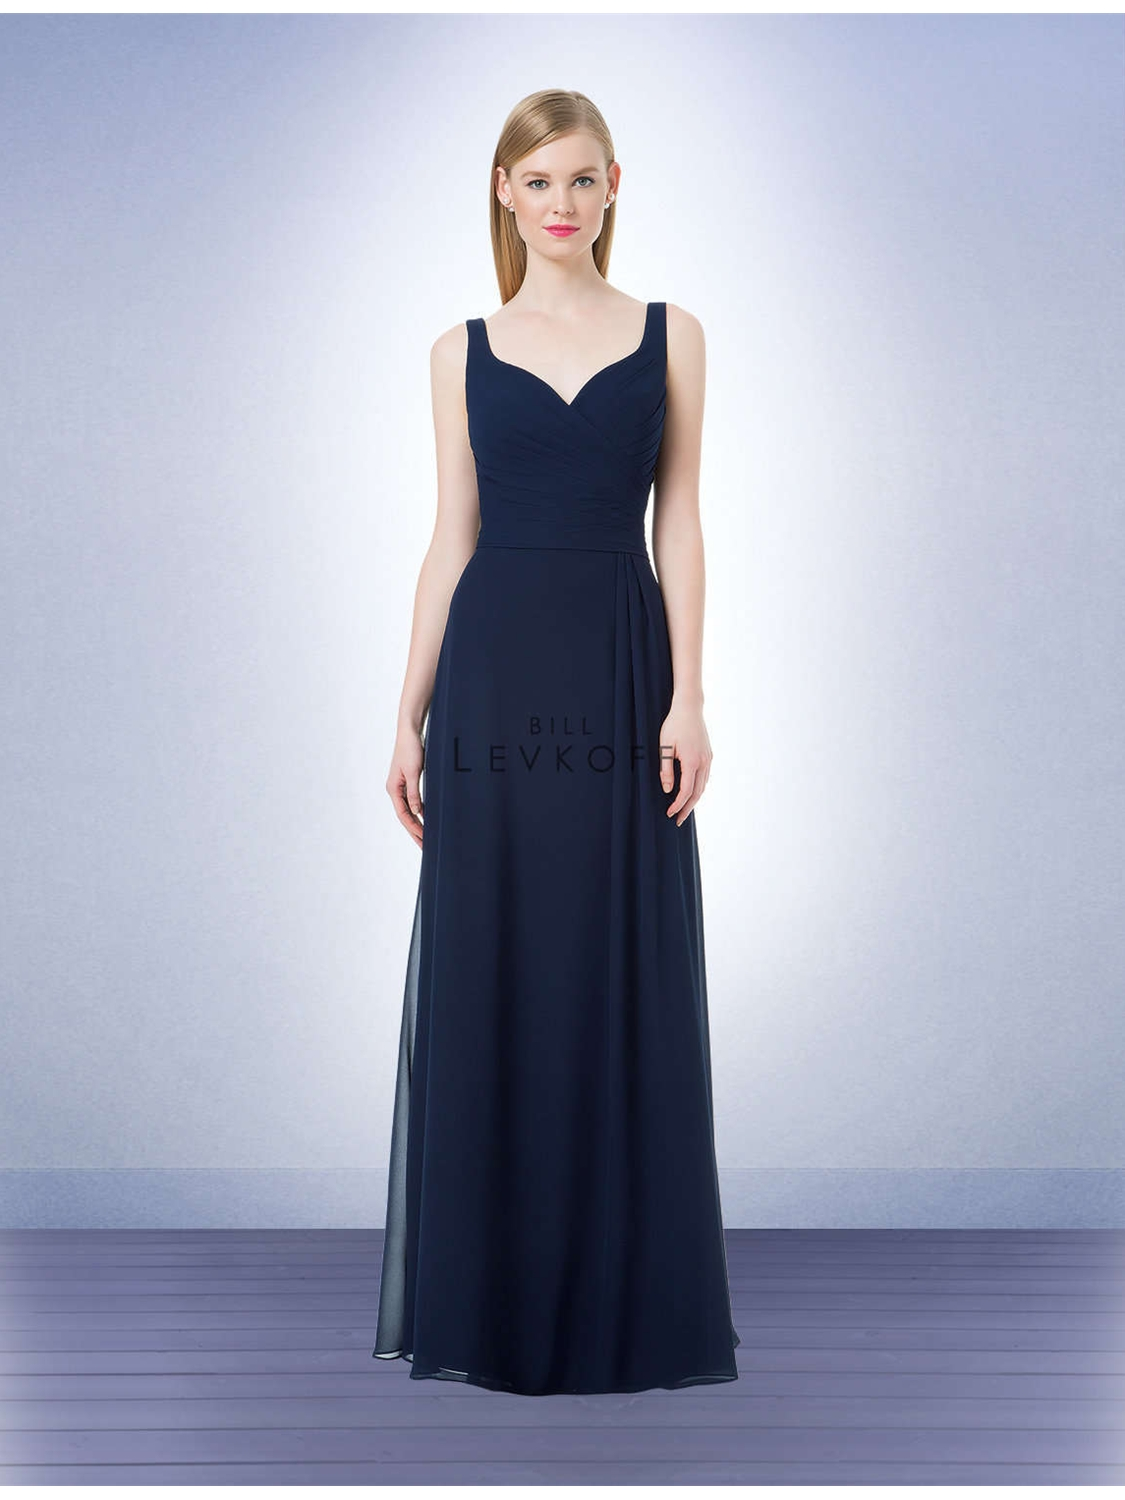 Bill levkoff bridesmaid dress style 1213 house of brides select color ombrellifo Gallery